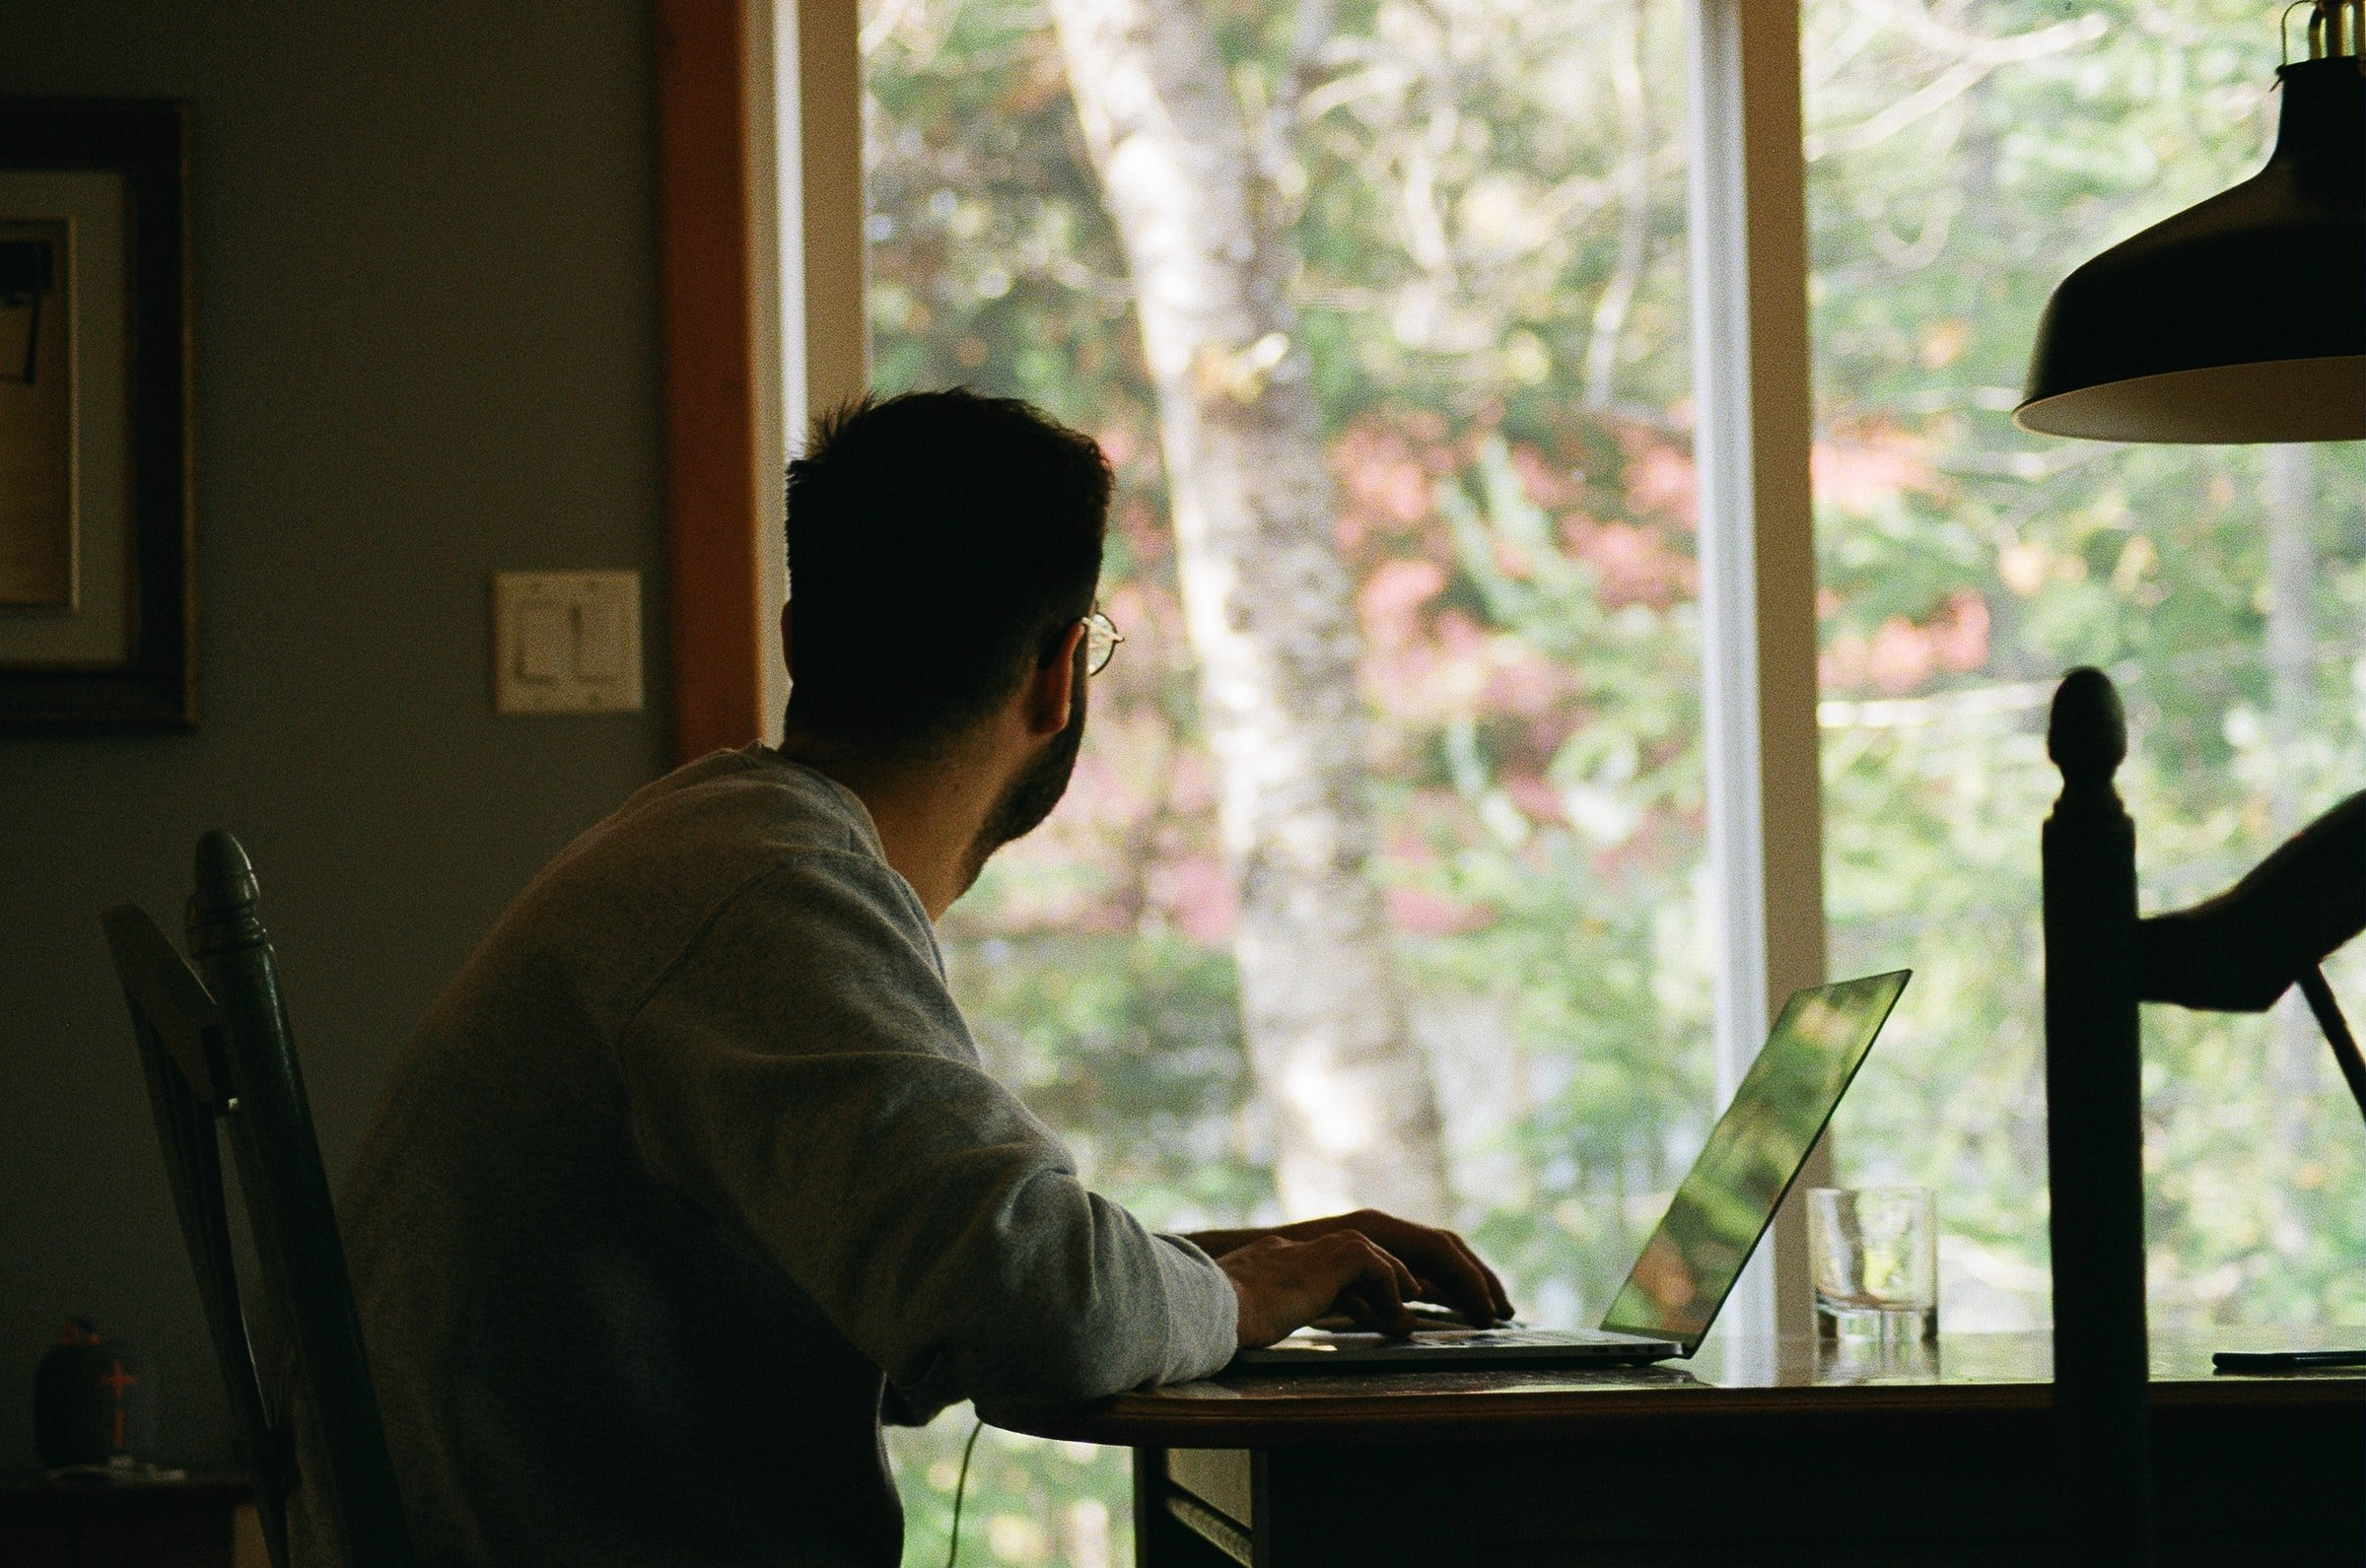 man sitting at a desk looking out the window